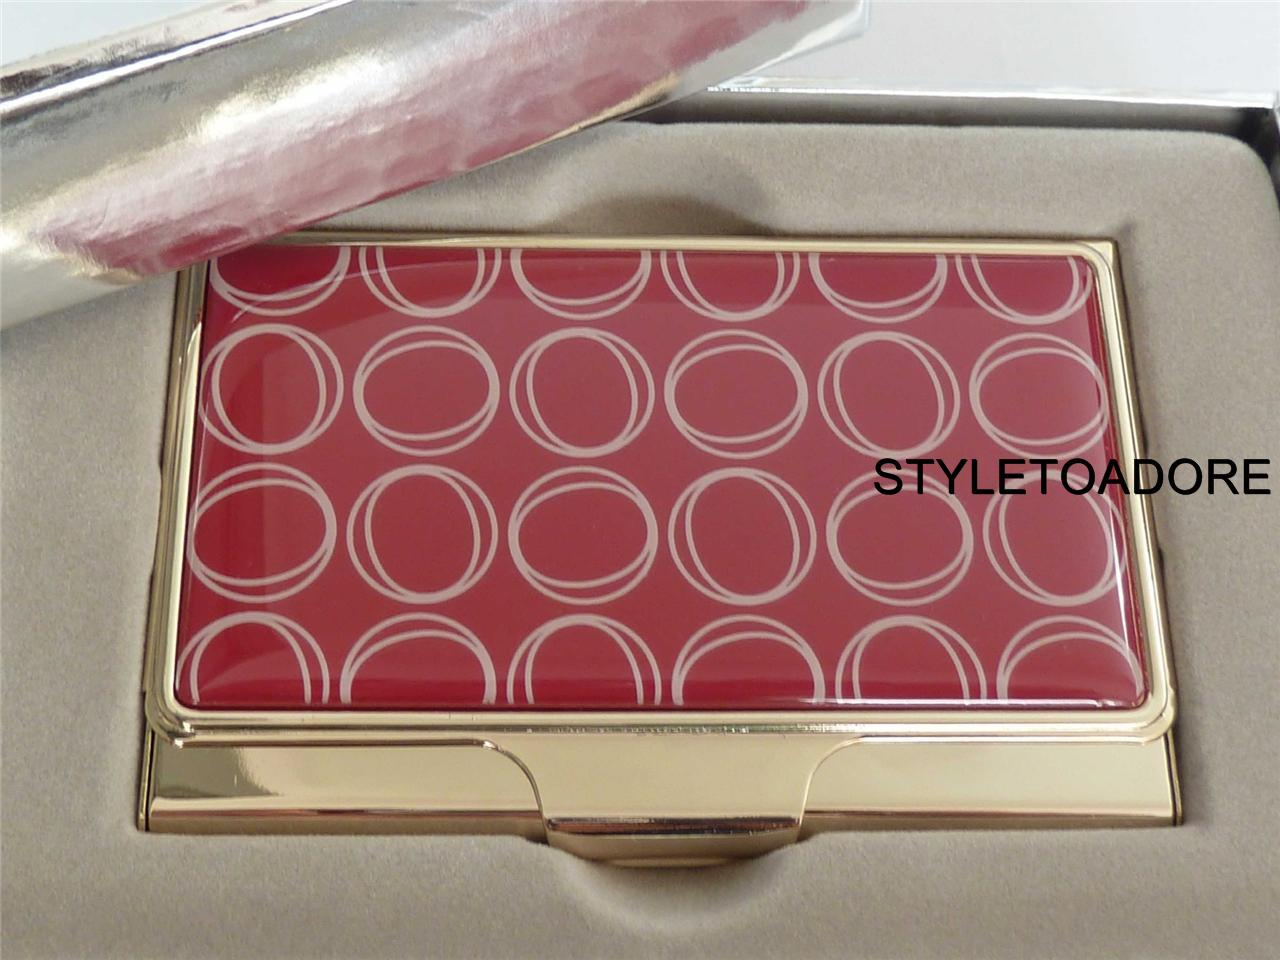 Bnwt oroton business card holder fuji red cream enamel bnwt oroton business card holder fuji red amp reheart Images